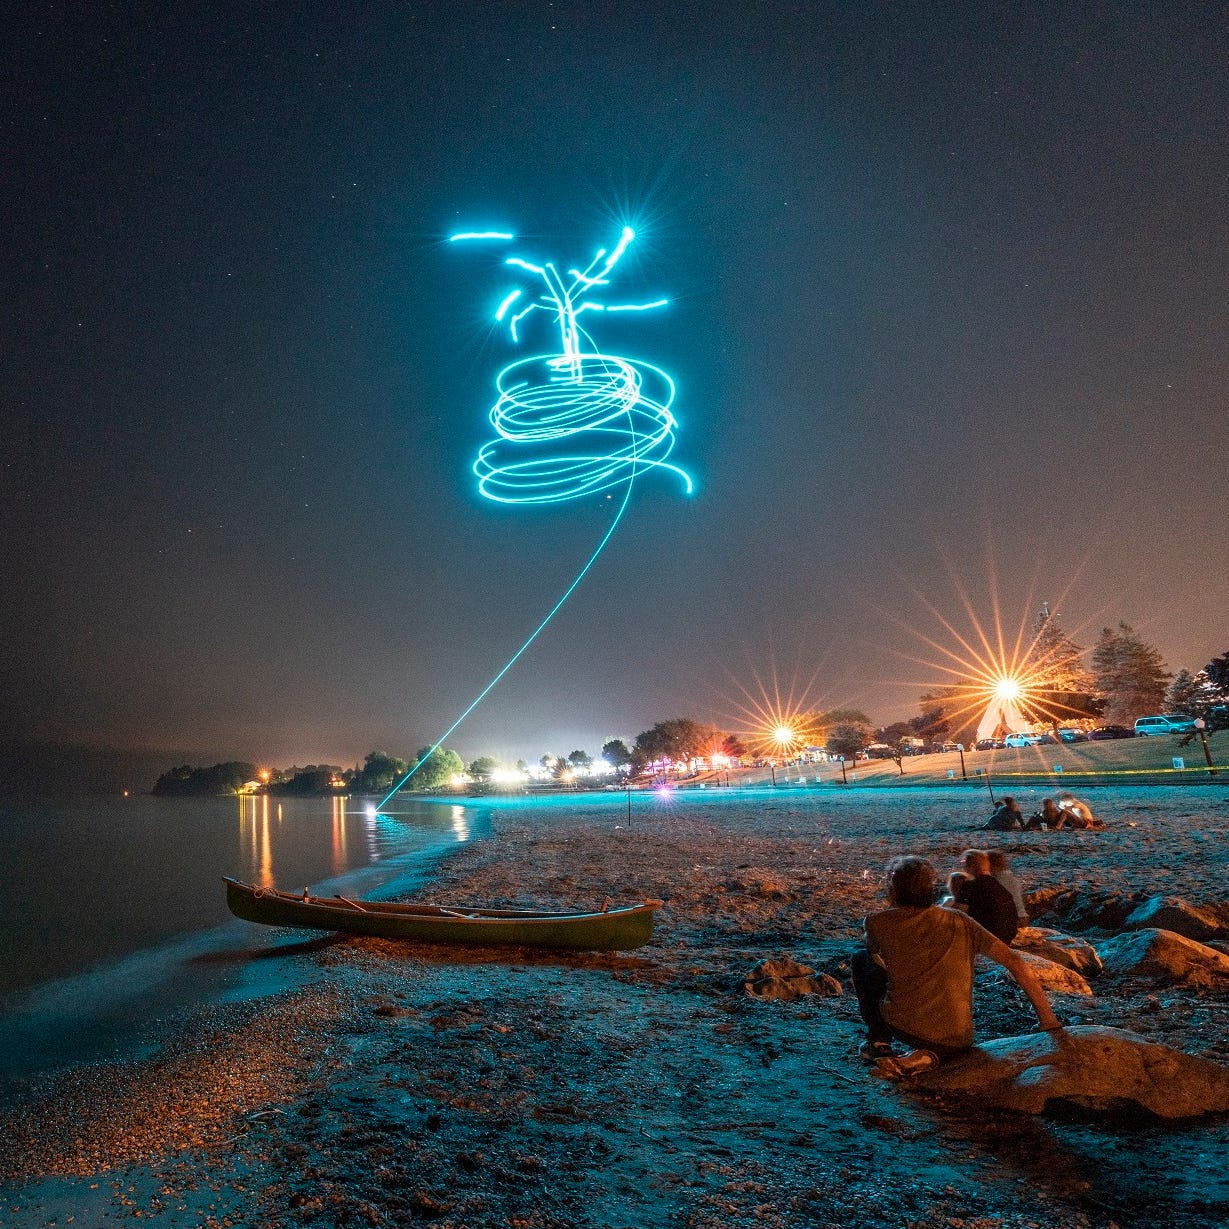 Photos from Shanty Days' drone light show